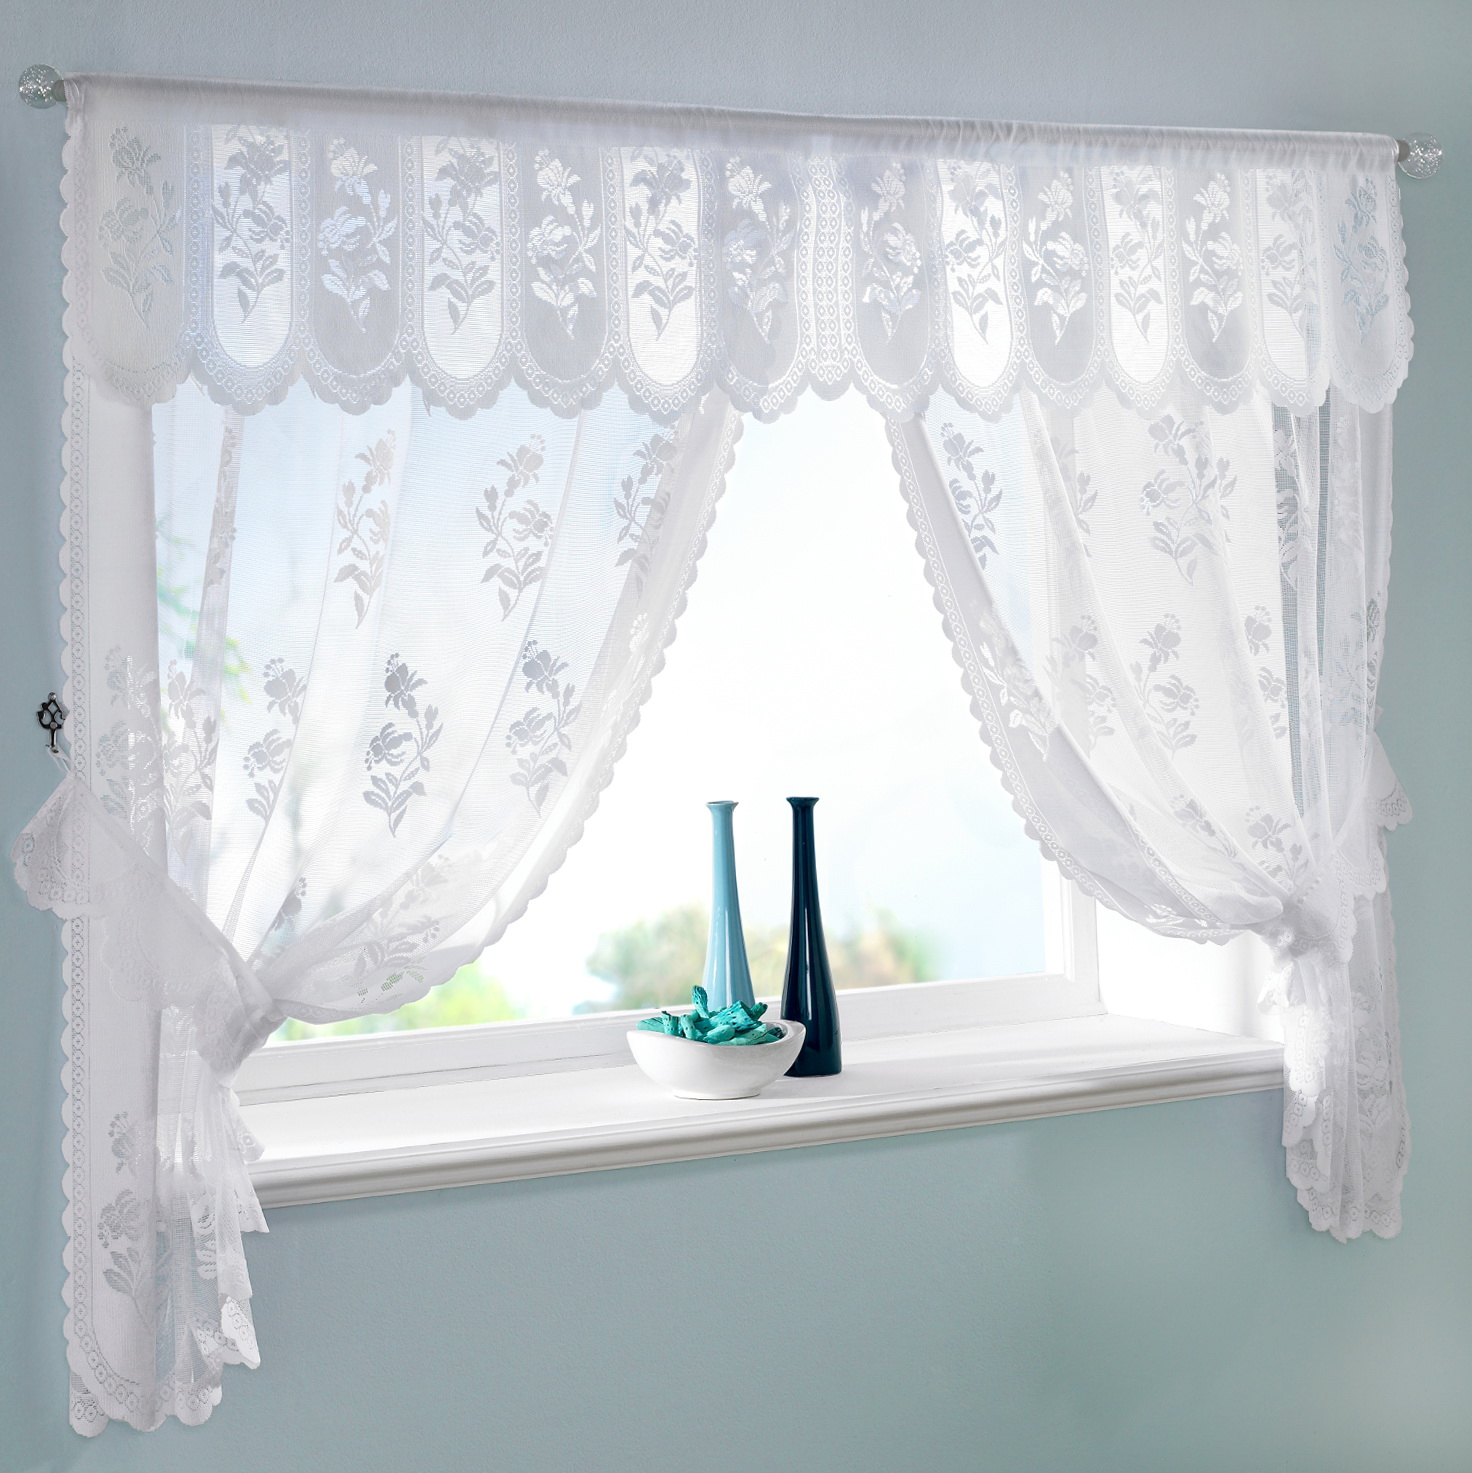 lace curtains for kitchen windows home design ideas